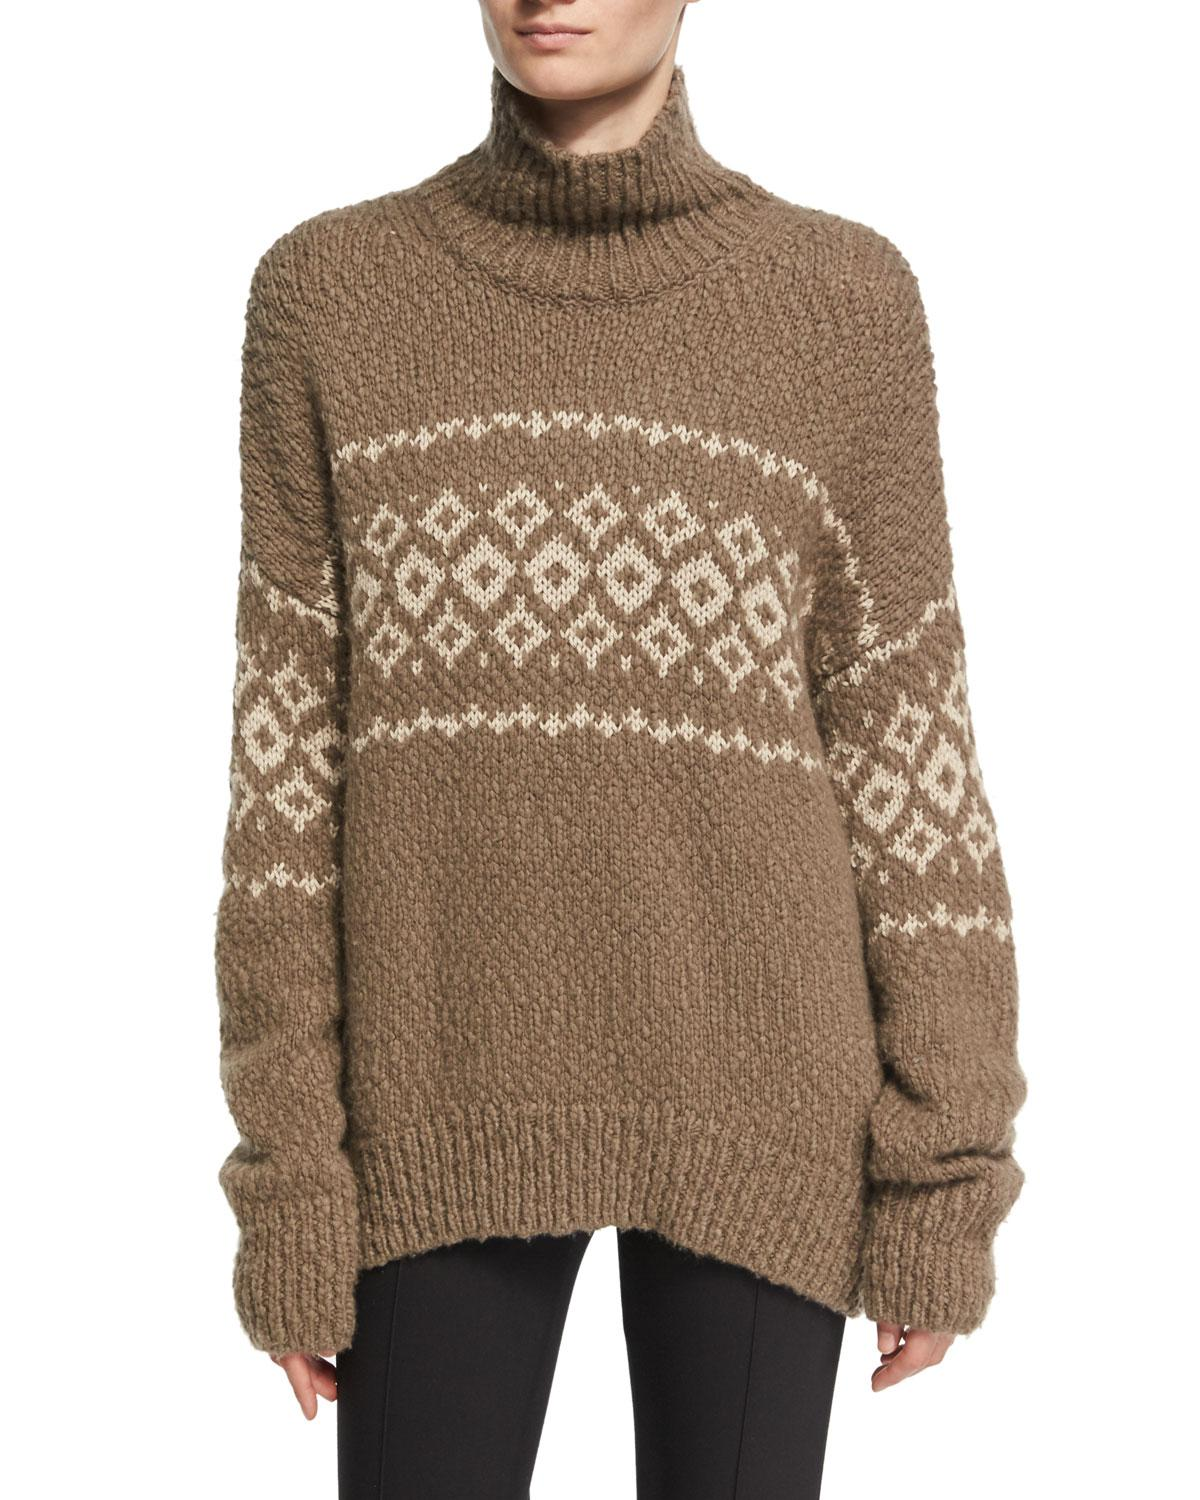 Vince Fair Isle Turtleneck Pullover Sweater in Brown | Lyst